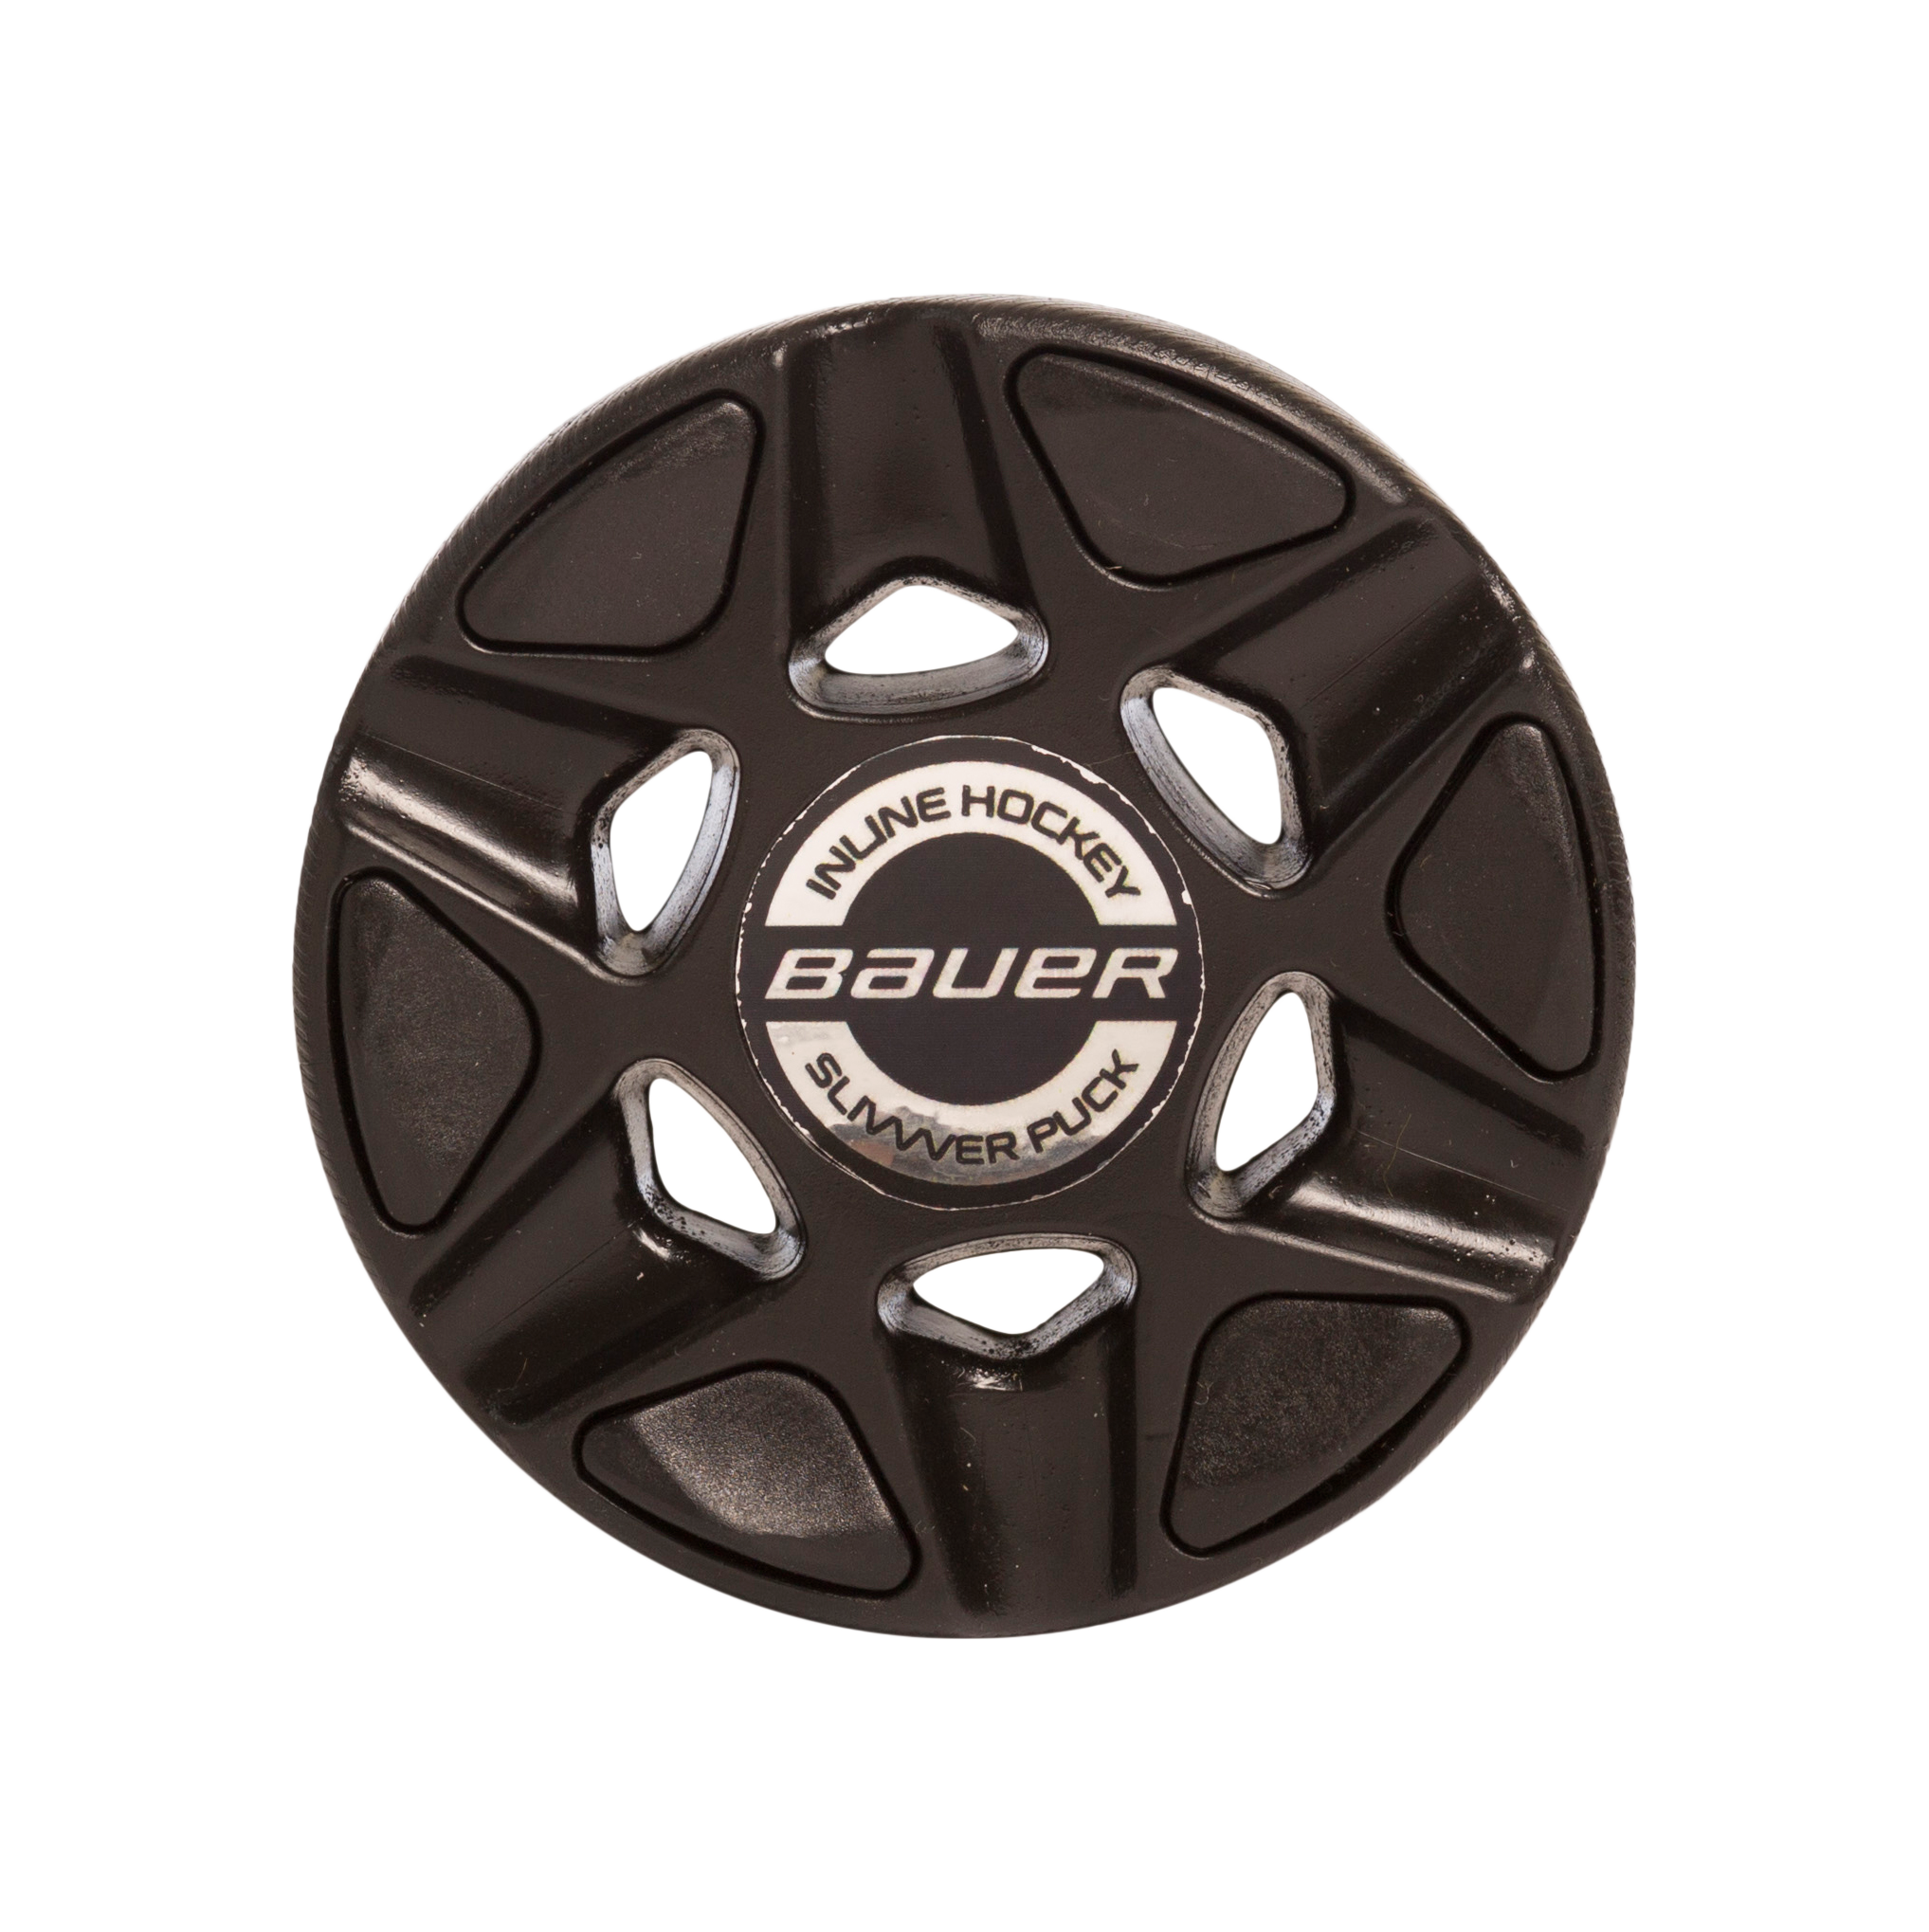 BAUER RH SLIVVVER PUCK (SINGLE)